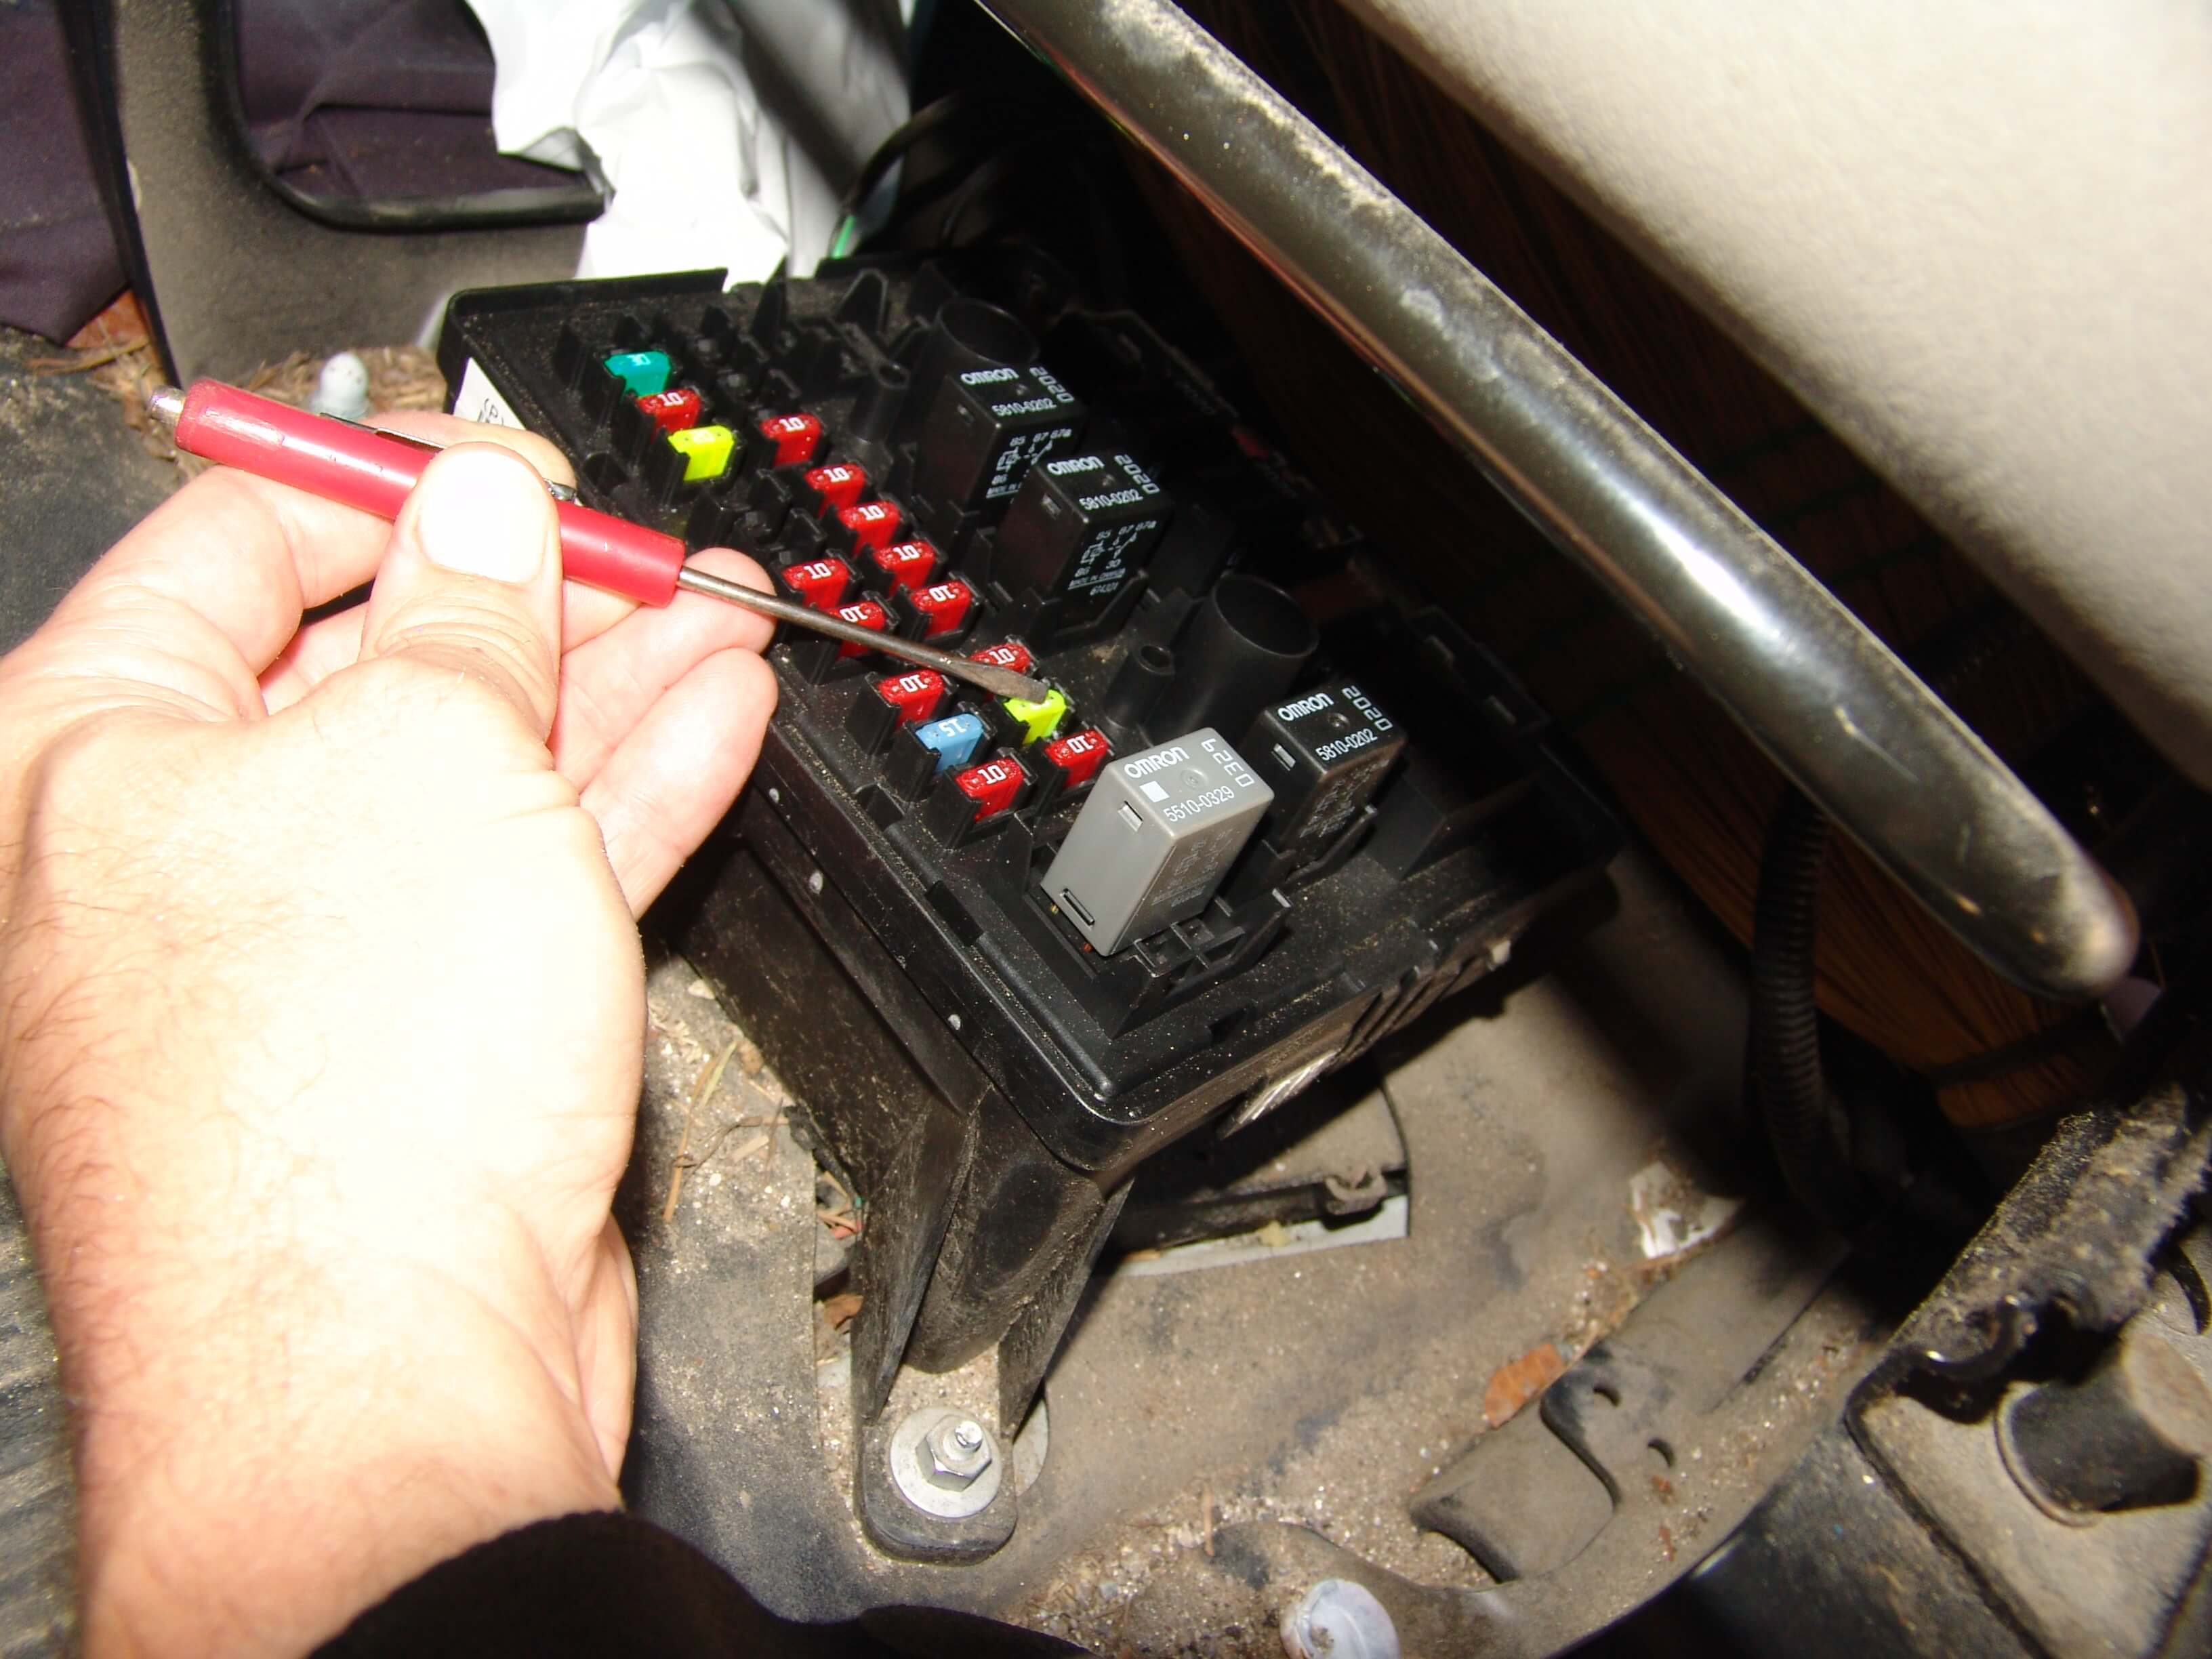 Sparky's Answers - 2007 Chevy Express G1500 Van, Fuse #10, HVAC Fuse BlowsSparky's Answers